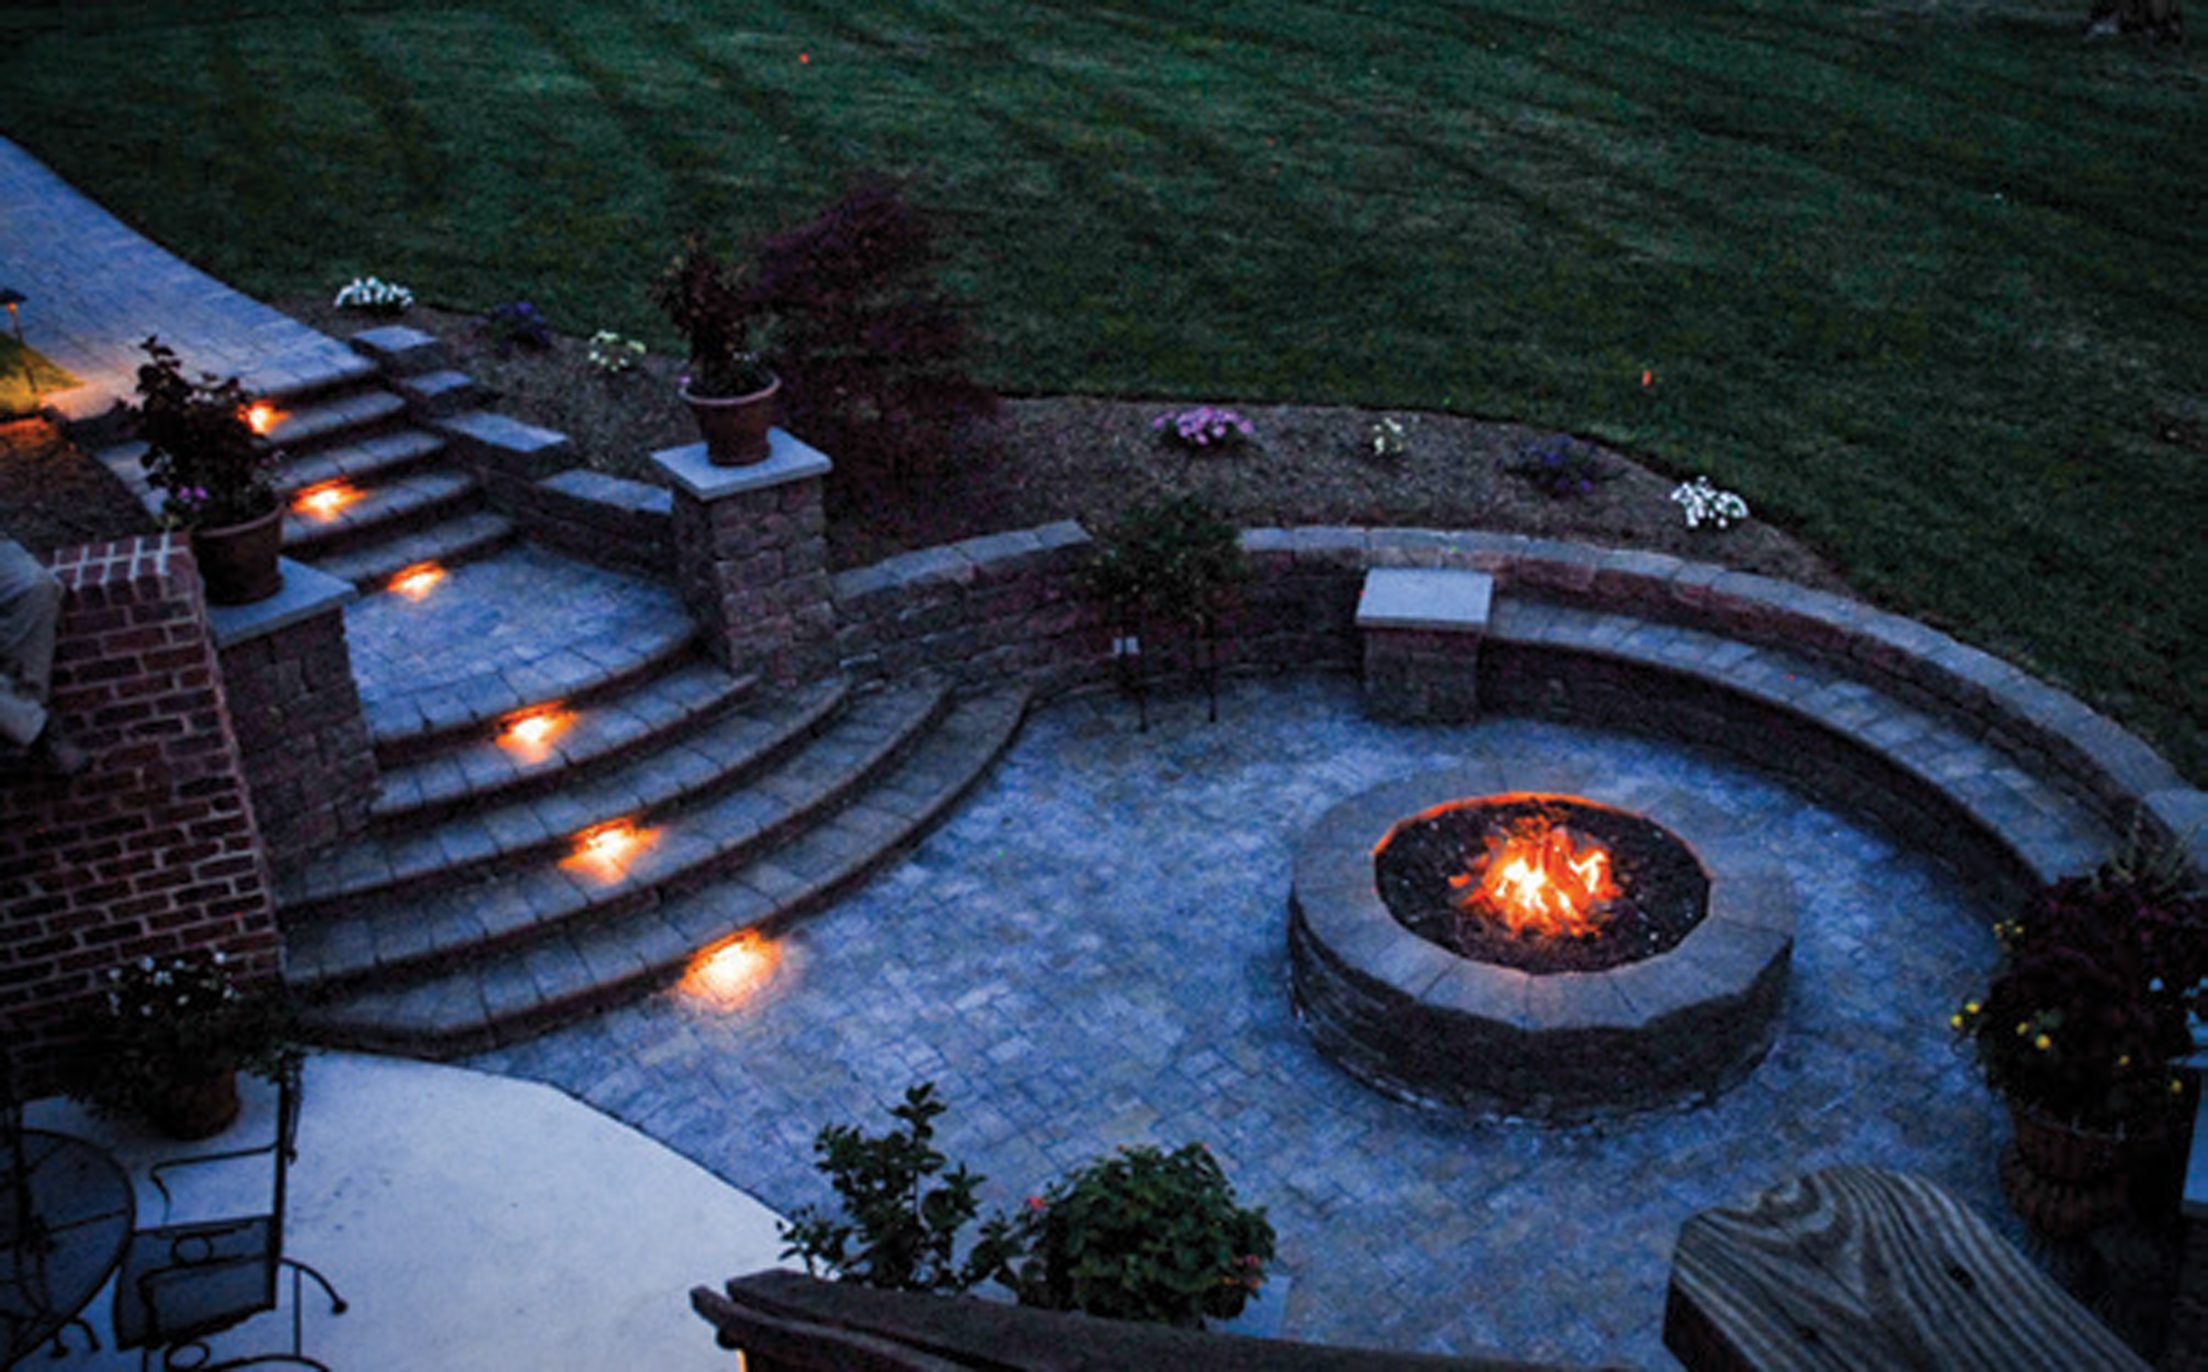 Burning Bright: Fiery Features for Outdoor Spaces